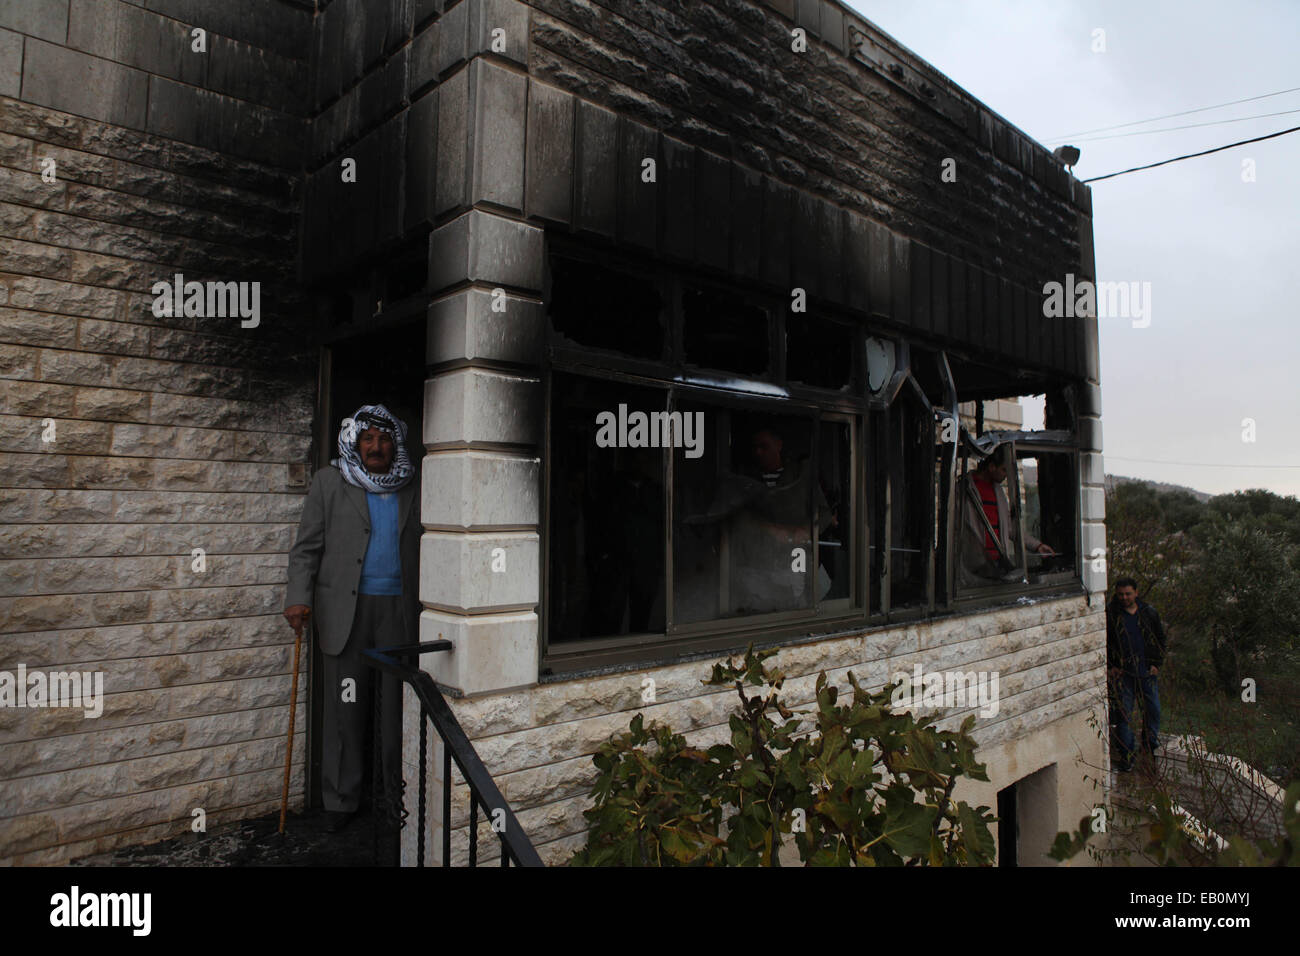 Ramallah, Ramallah. 23rd Nov, 2014. Palestinian are seen in front of the house which was attacked by petrol bombs - Stock Image